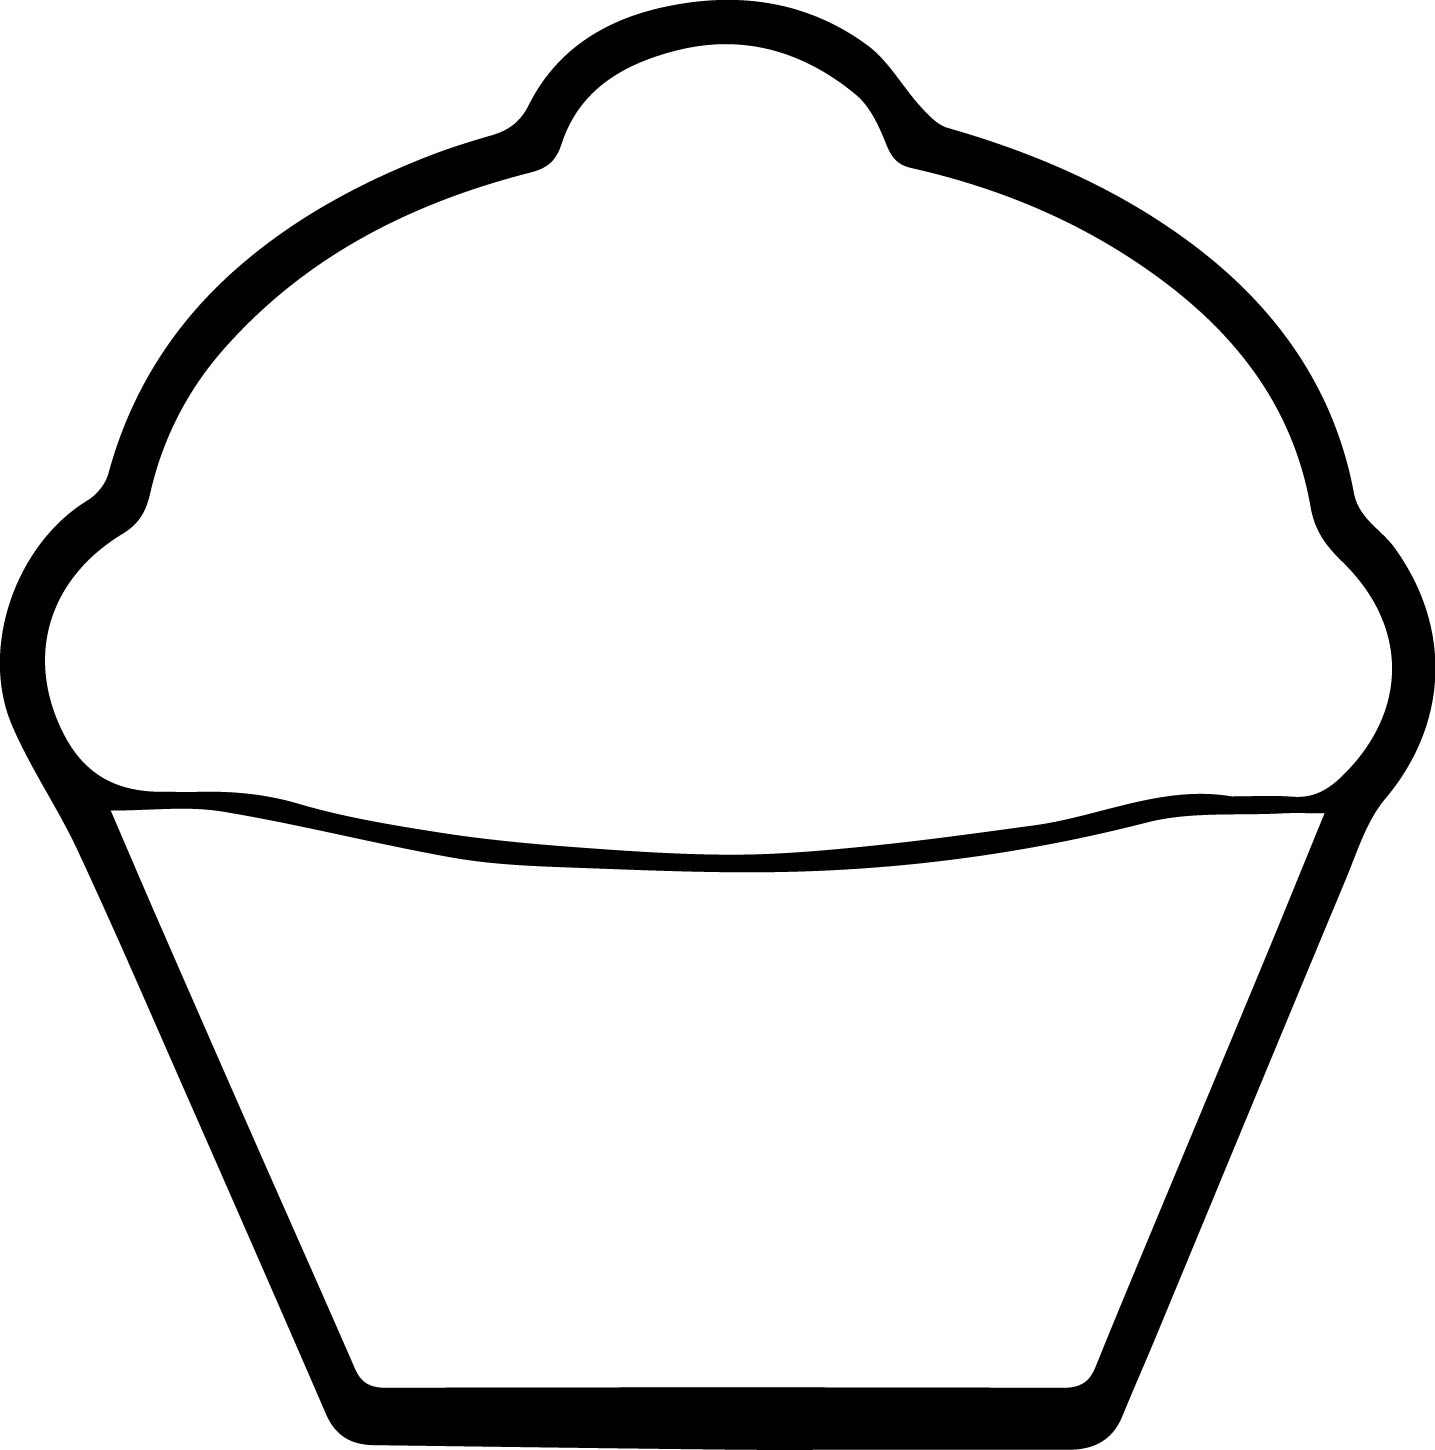 Cupcake Drawing Easy at GetDrawings.com | Free for personal use ...